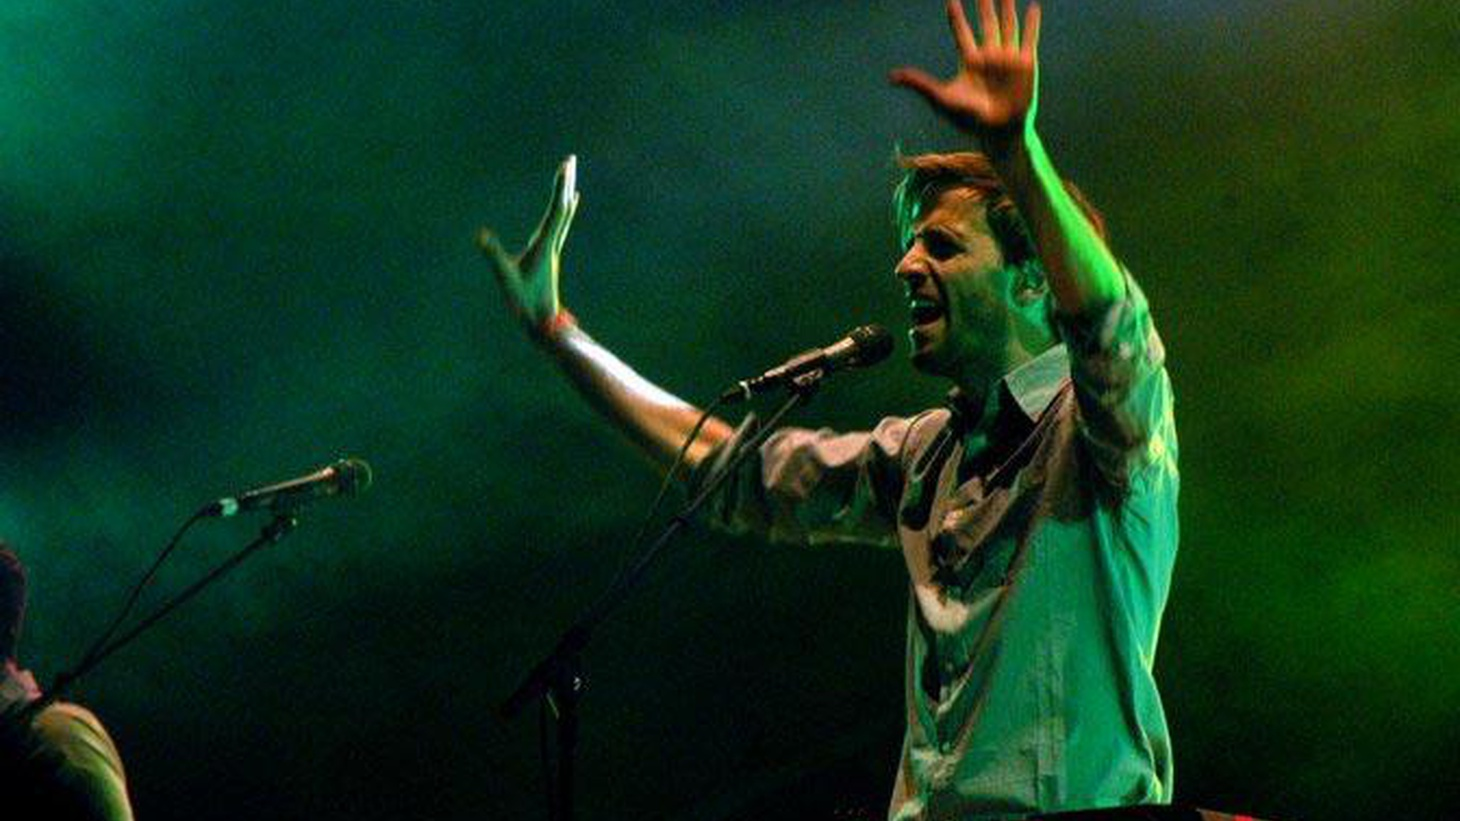 Australian band Cut Copy perfectly merges pop with dance music, earning them a dedicated following...